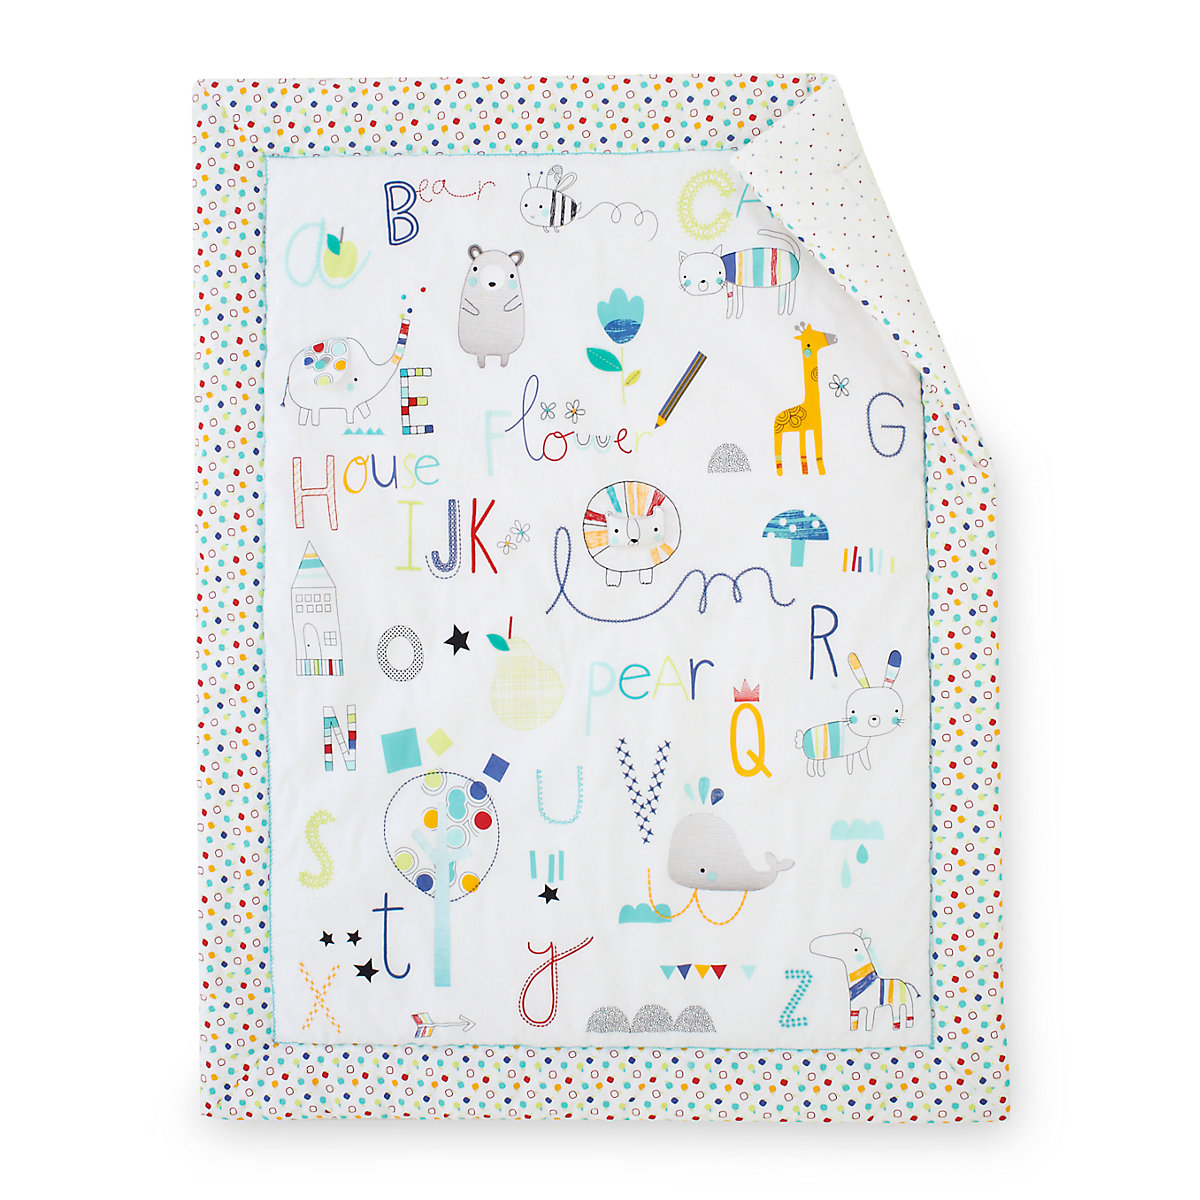 Baby bed quilt size - Image Is Loading B Baby Bedding Alphabet Brights Cot Bed Quilt